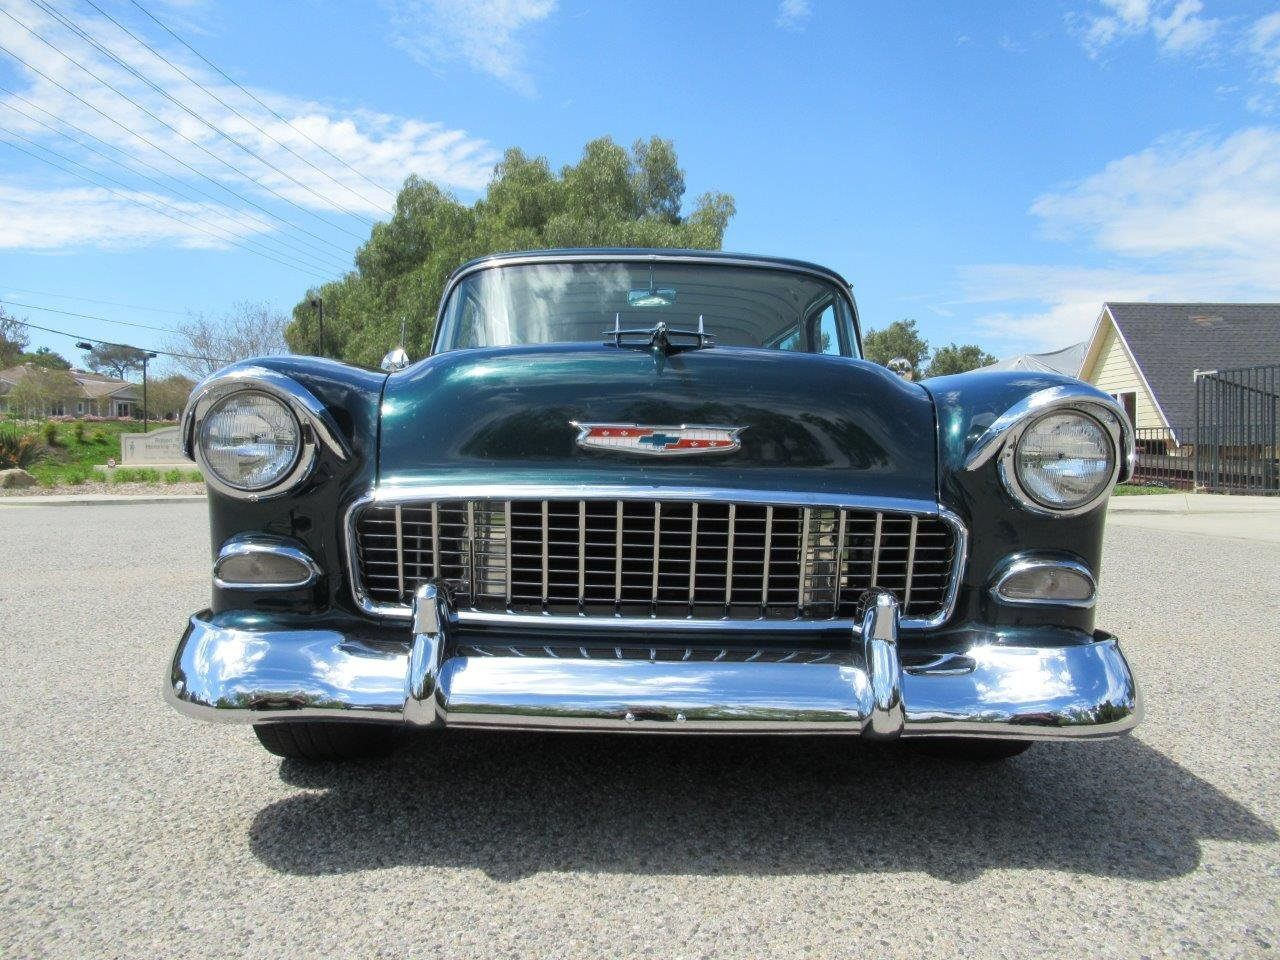 1955 Chevrolet Nomad For Sale (picture 3 of 6)